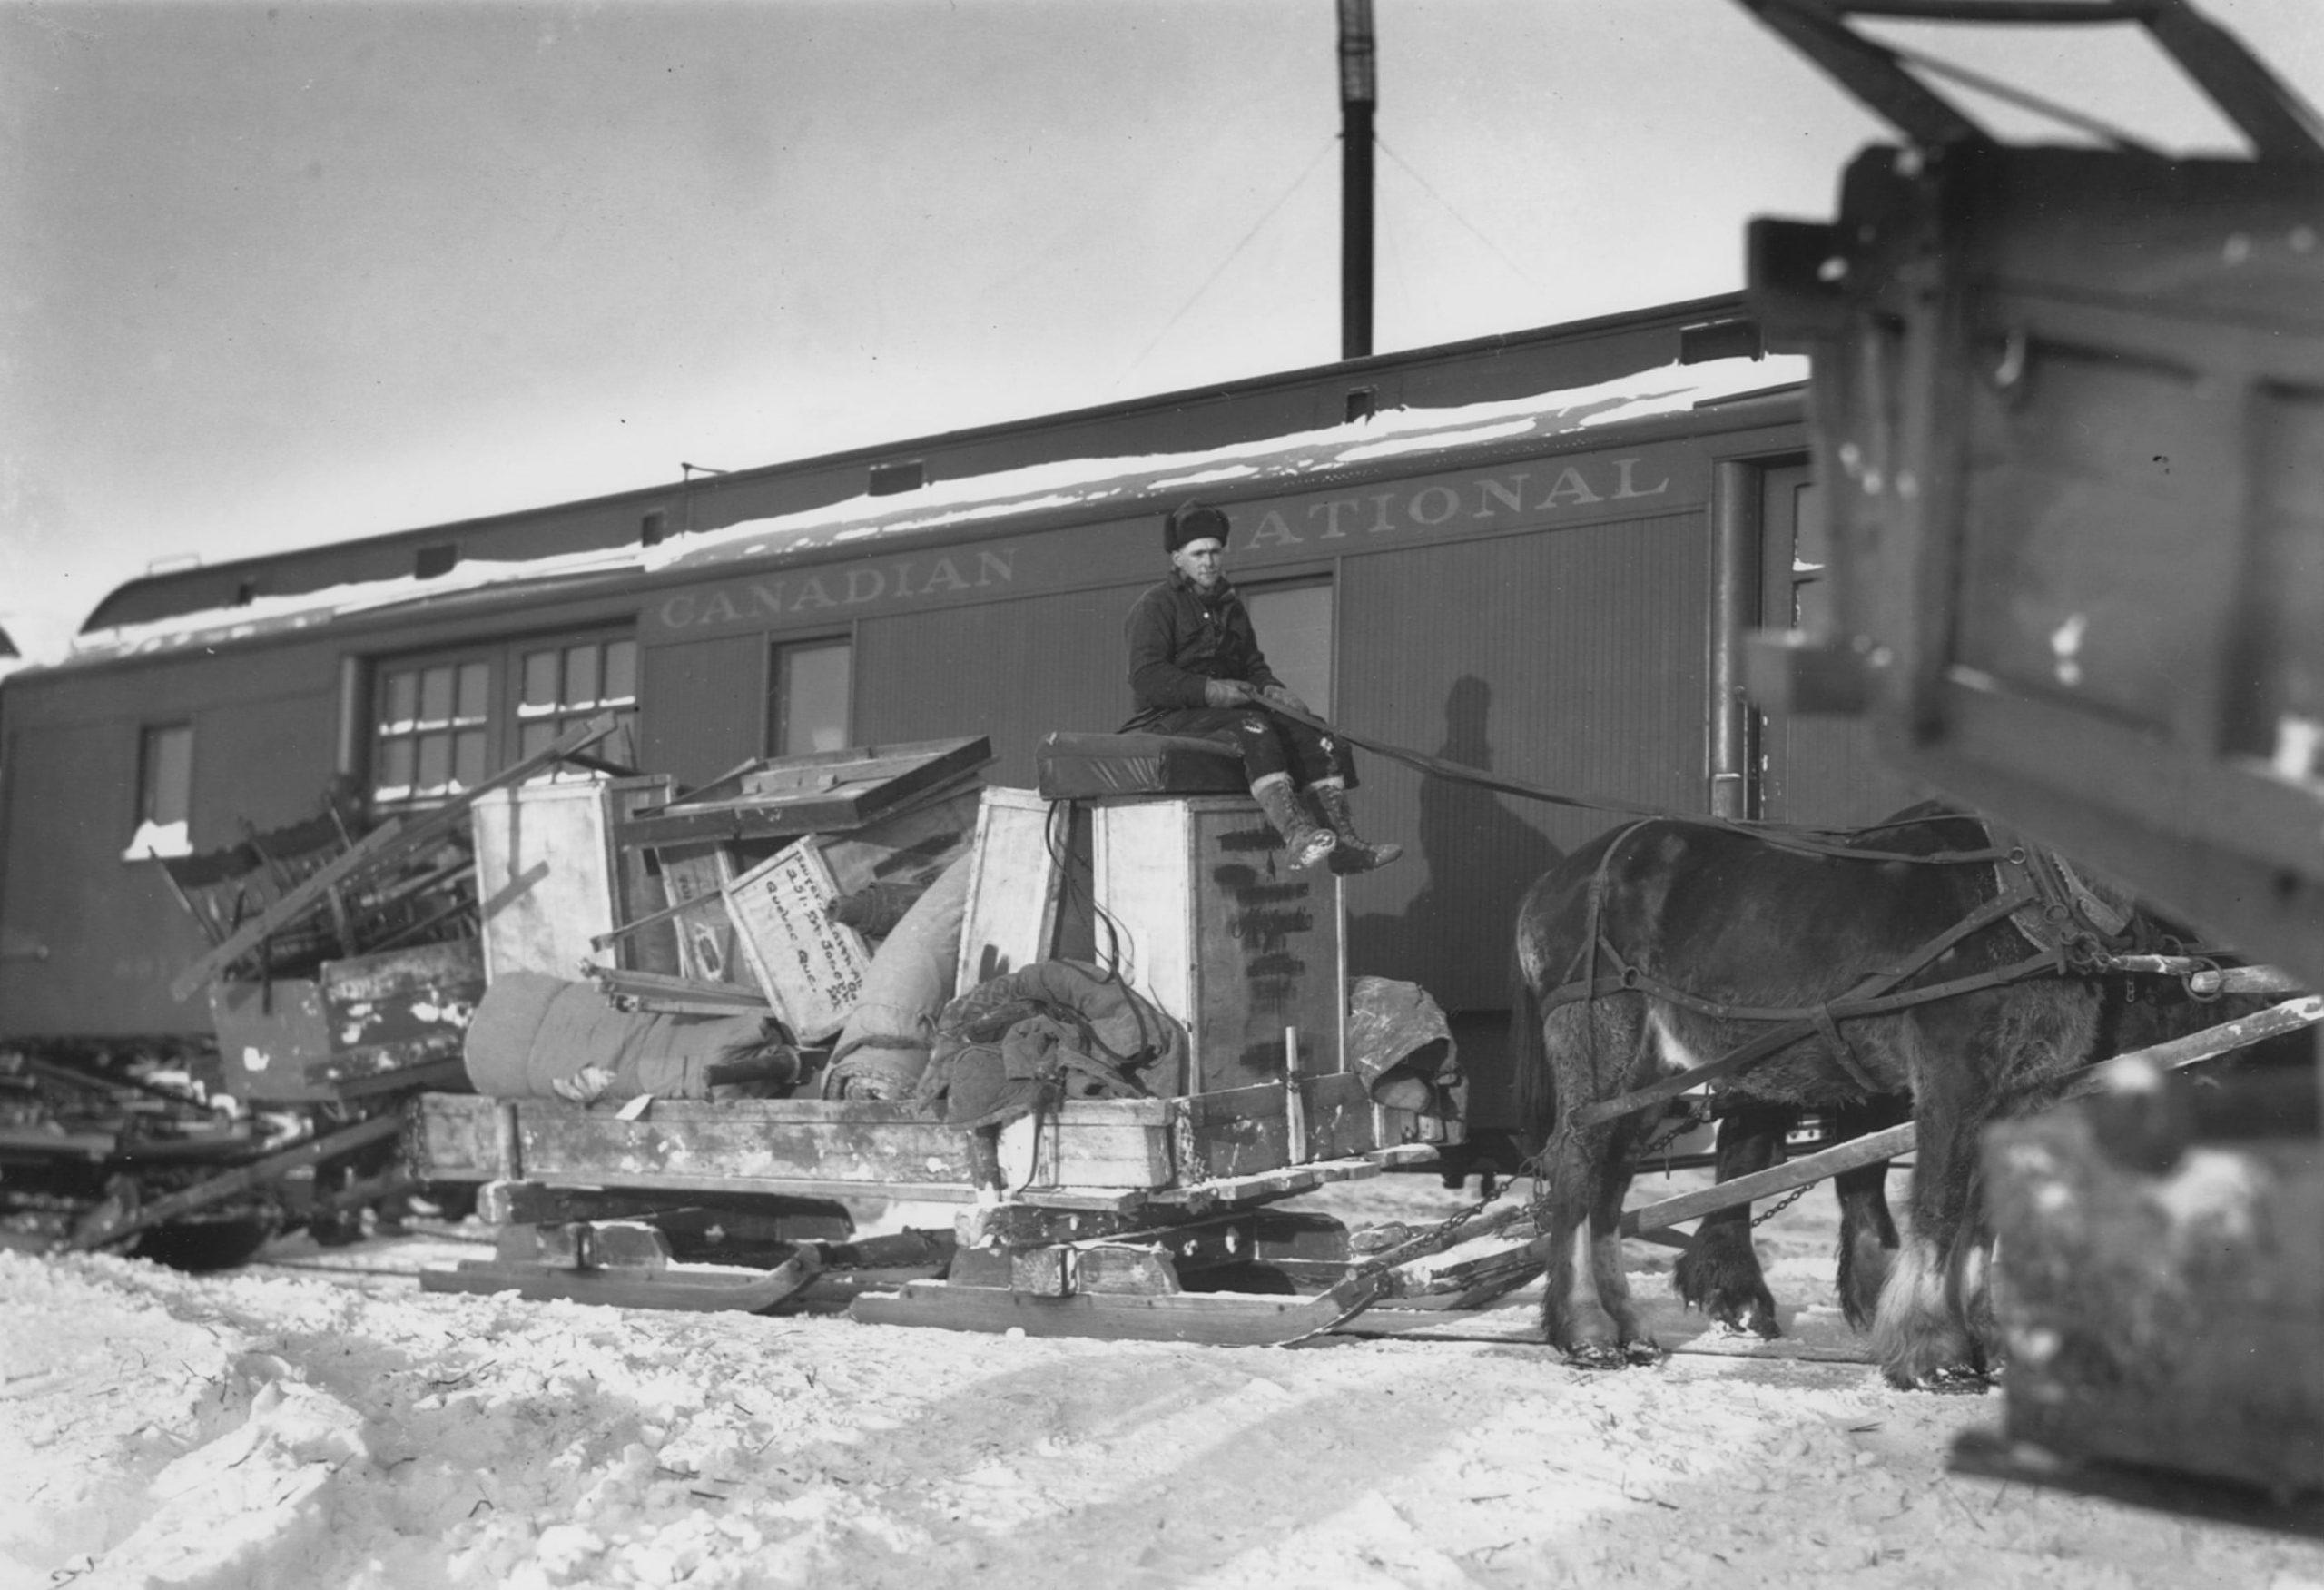 """Black and white photograph of a cart, filled to the brim with furniture and boxes, being pulled by two horses driven by a man sitting on the goods. Given the snow, the cart is on skis and the man is dressed warmly. A wagon bearing the inscription """"Canadian National"""" is in the background."""